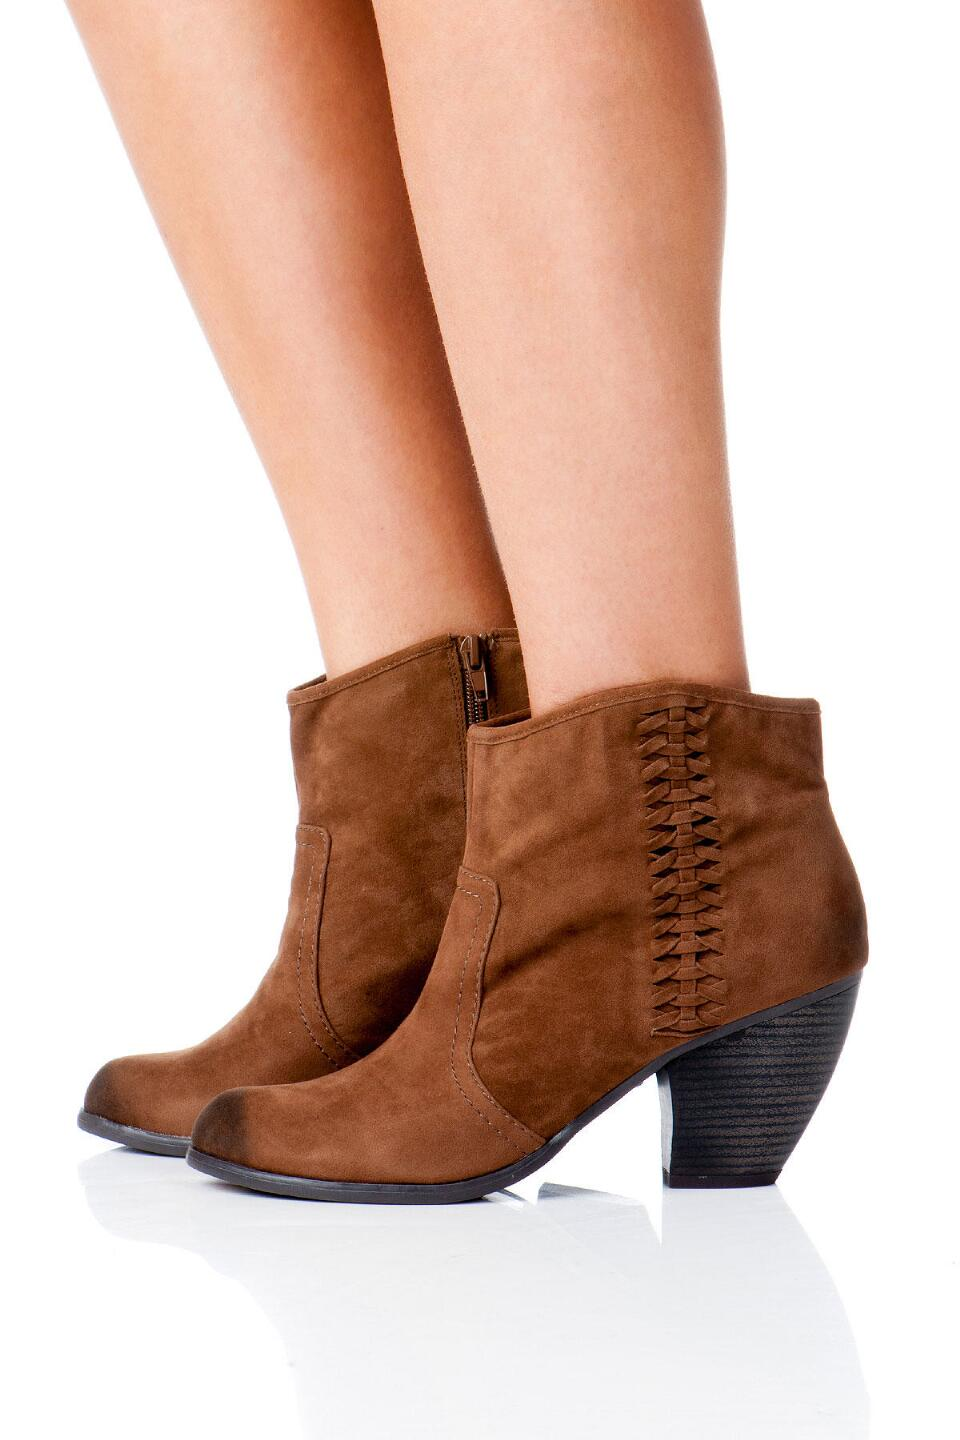 Lotus Braided Bootie-  tan-clmodel